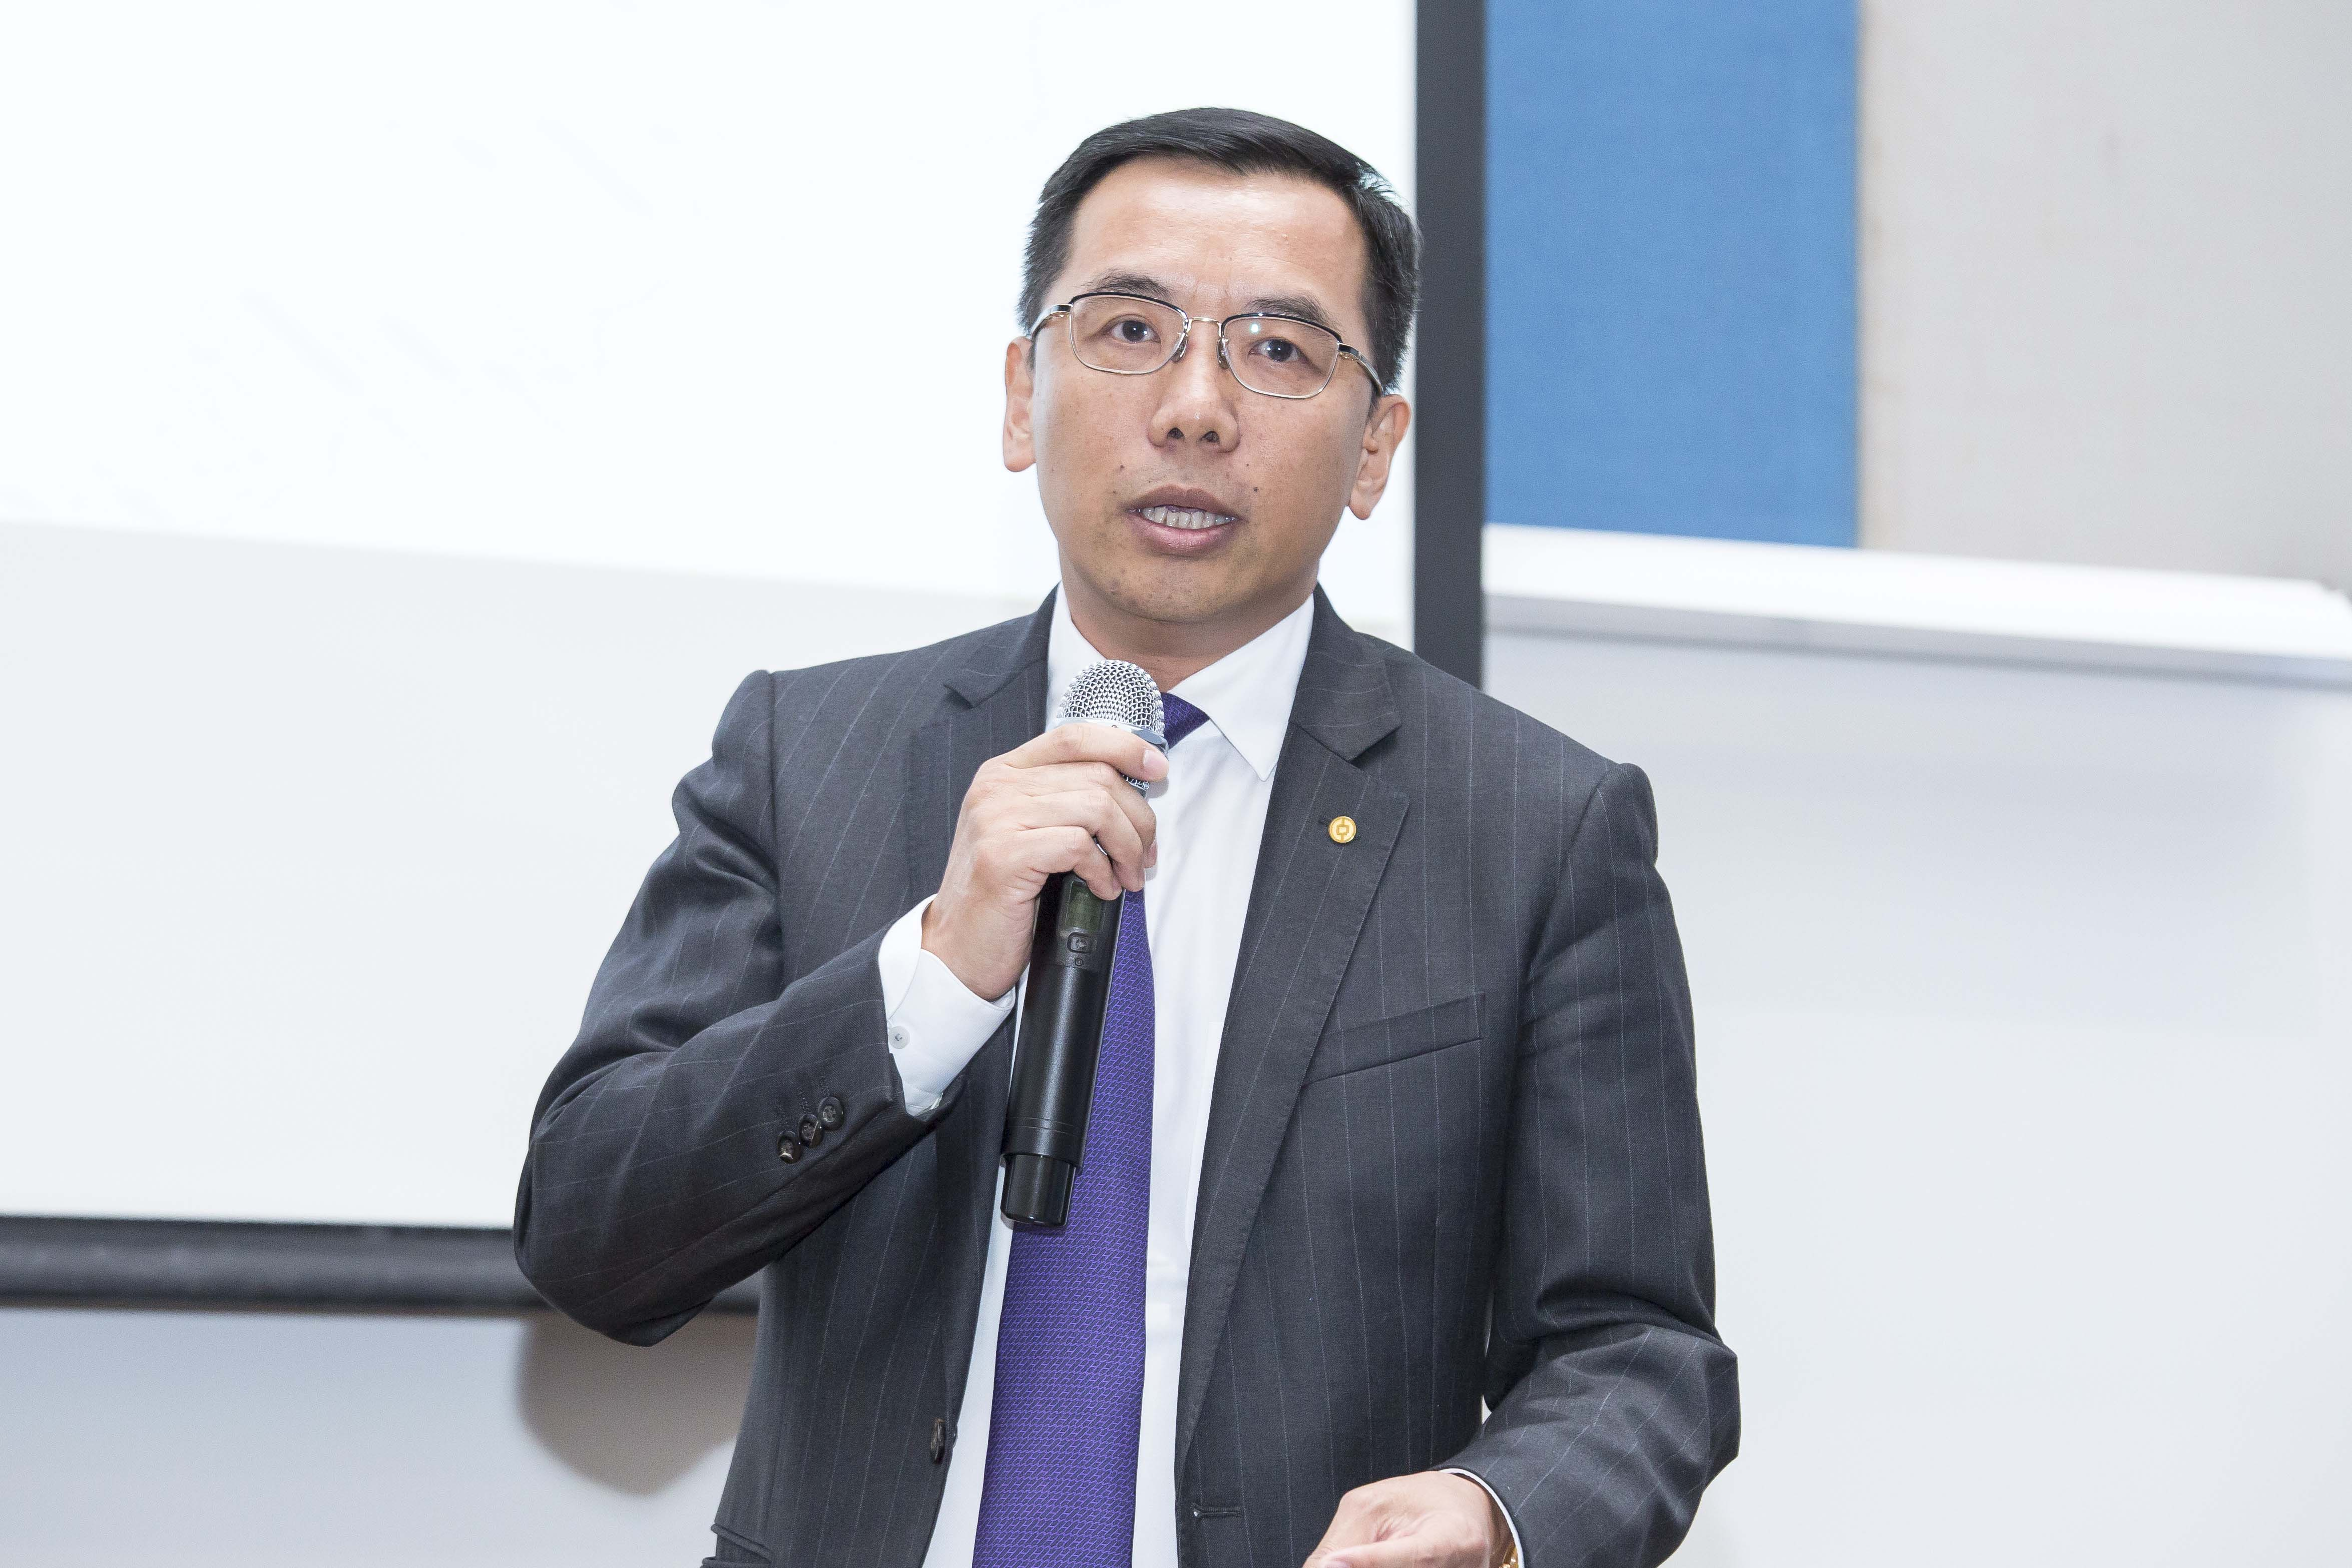 The vice president of Bank of China Macau delivers a speech